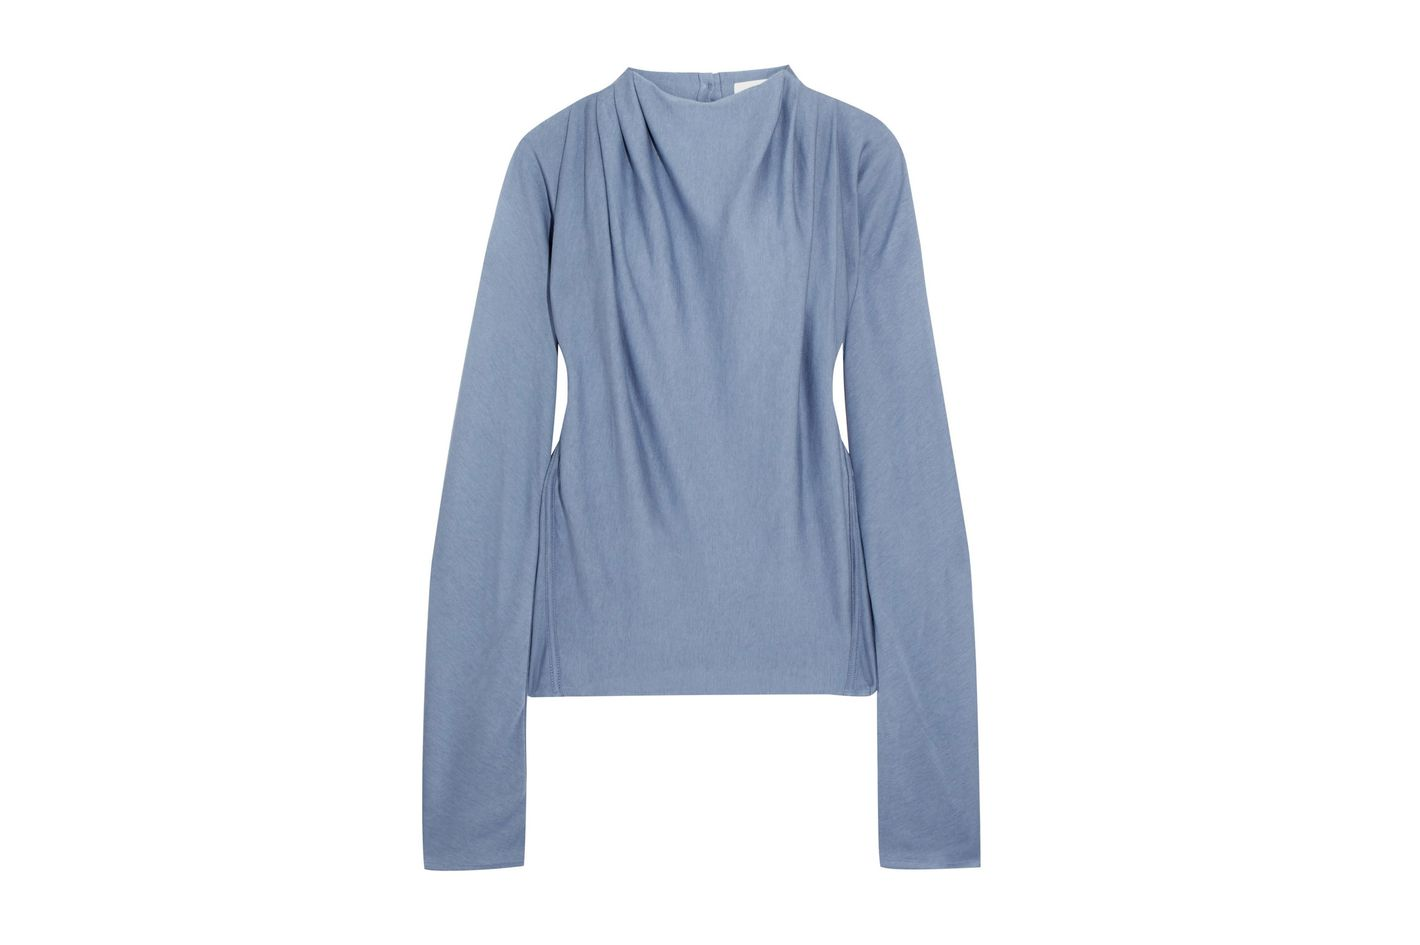 Lemaire Draped Top